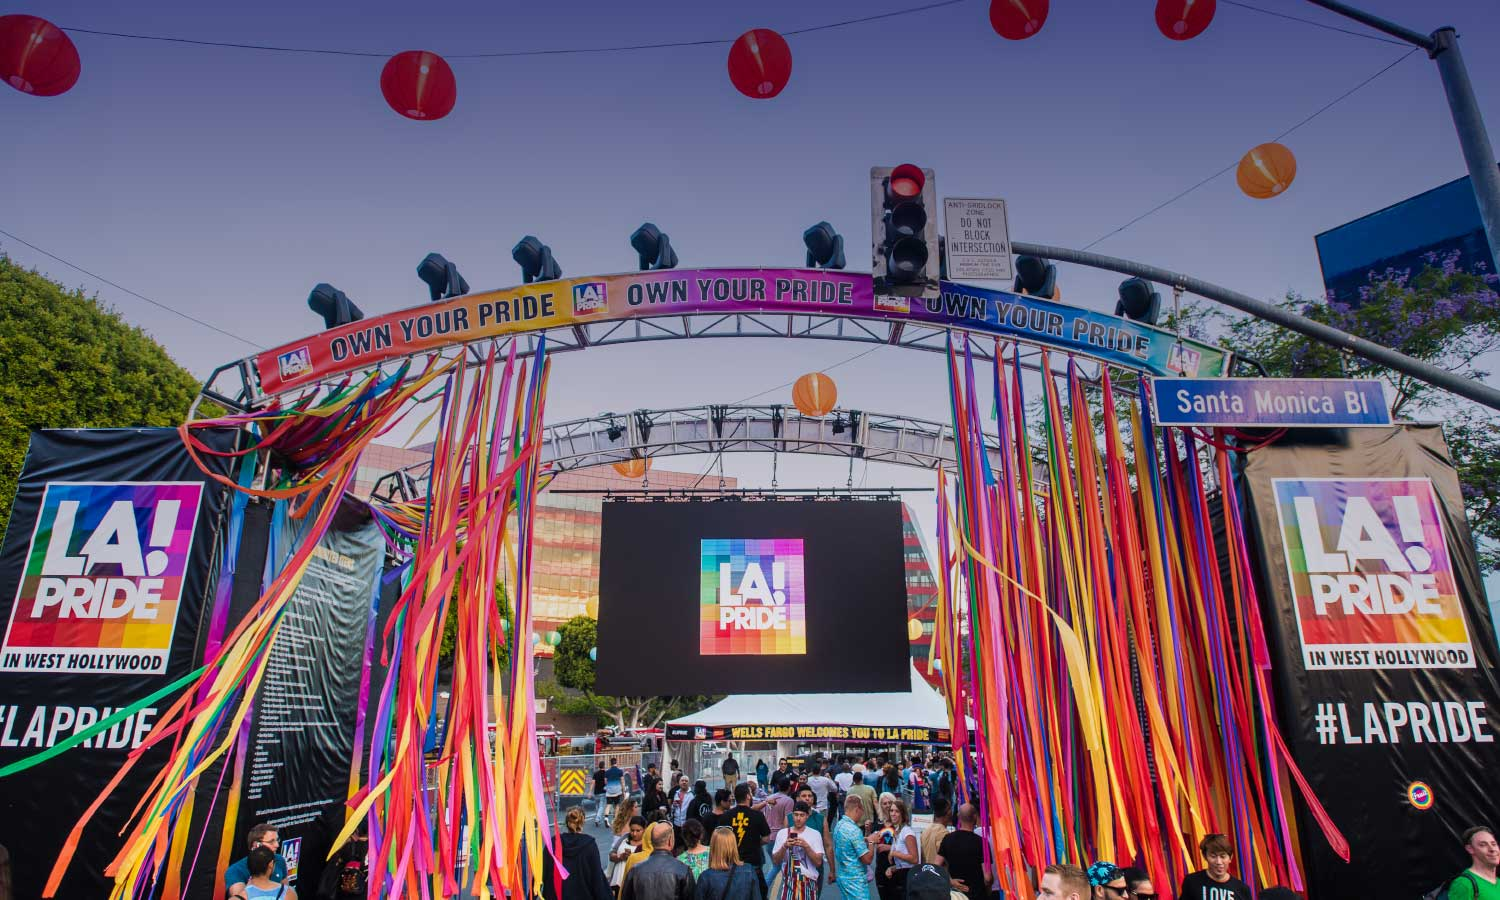 An archway of colorful streamers and Chinese lanterns at LA's Pride Parade with people underneath the arch